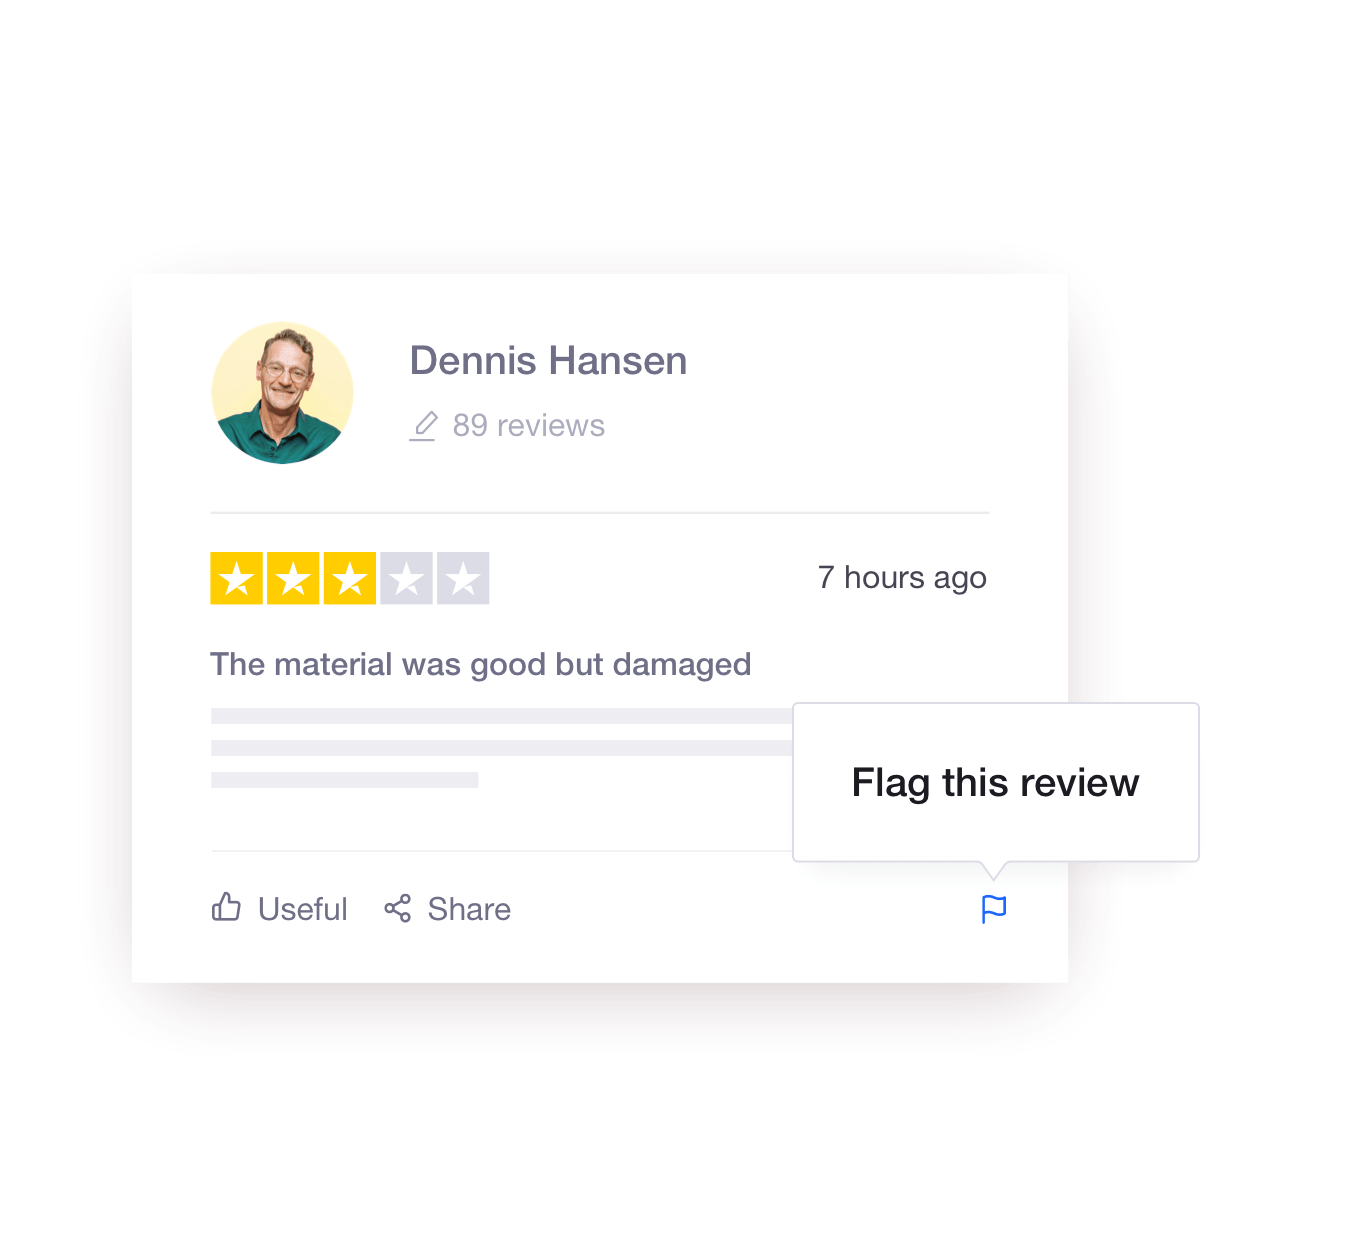 Trustpilot's review flagging functionality